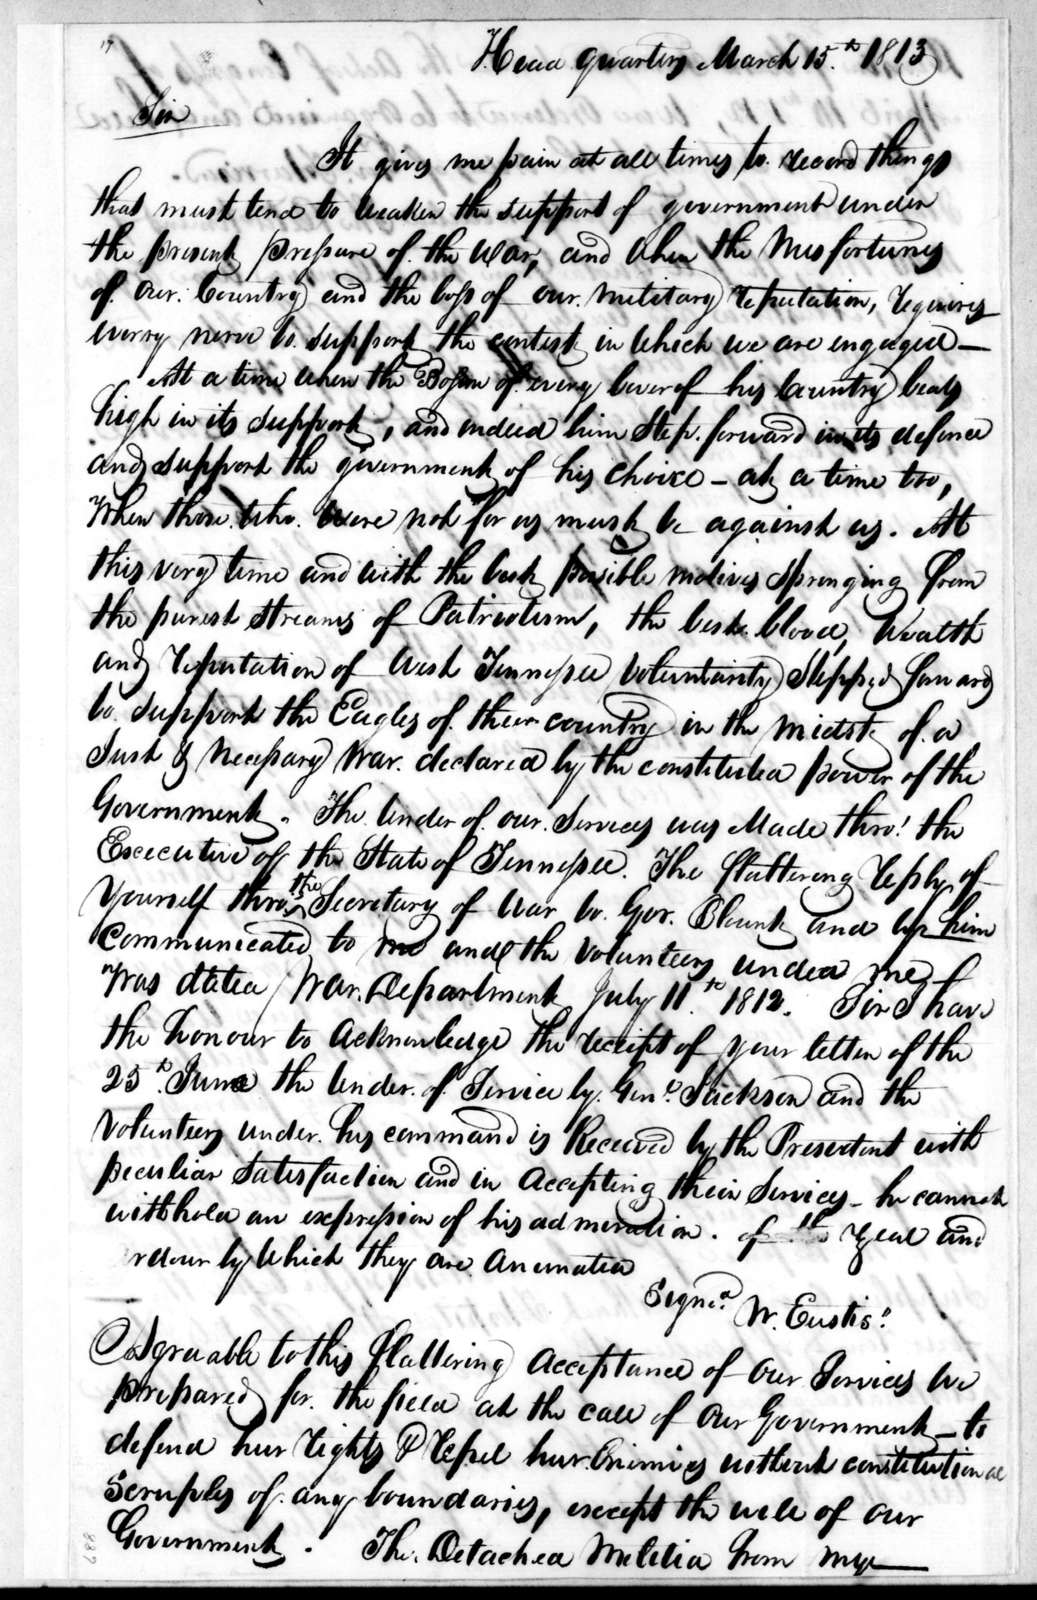 Andrew Jackson to James Wilkinson, March 15, 1813